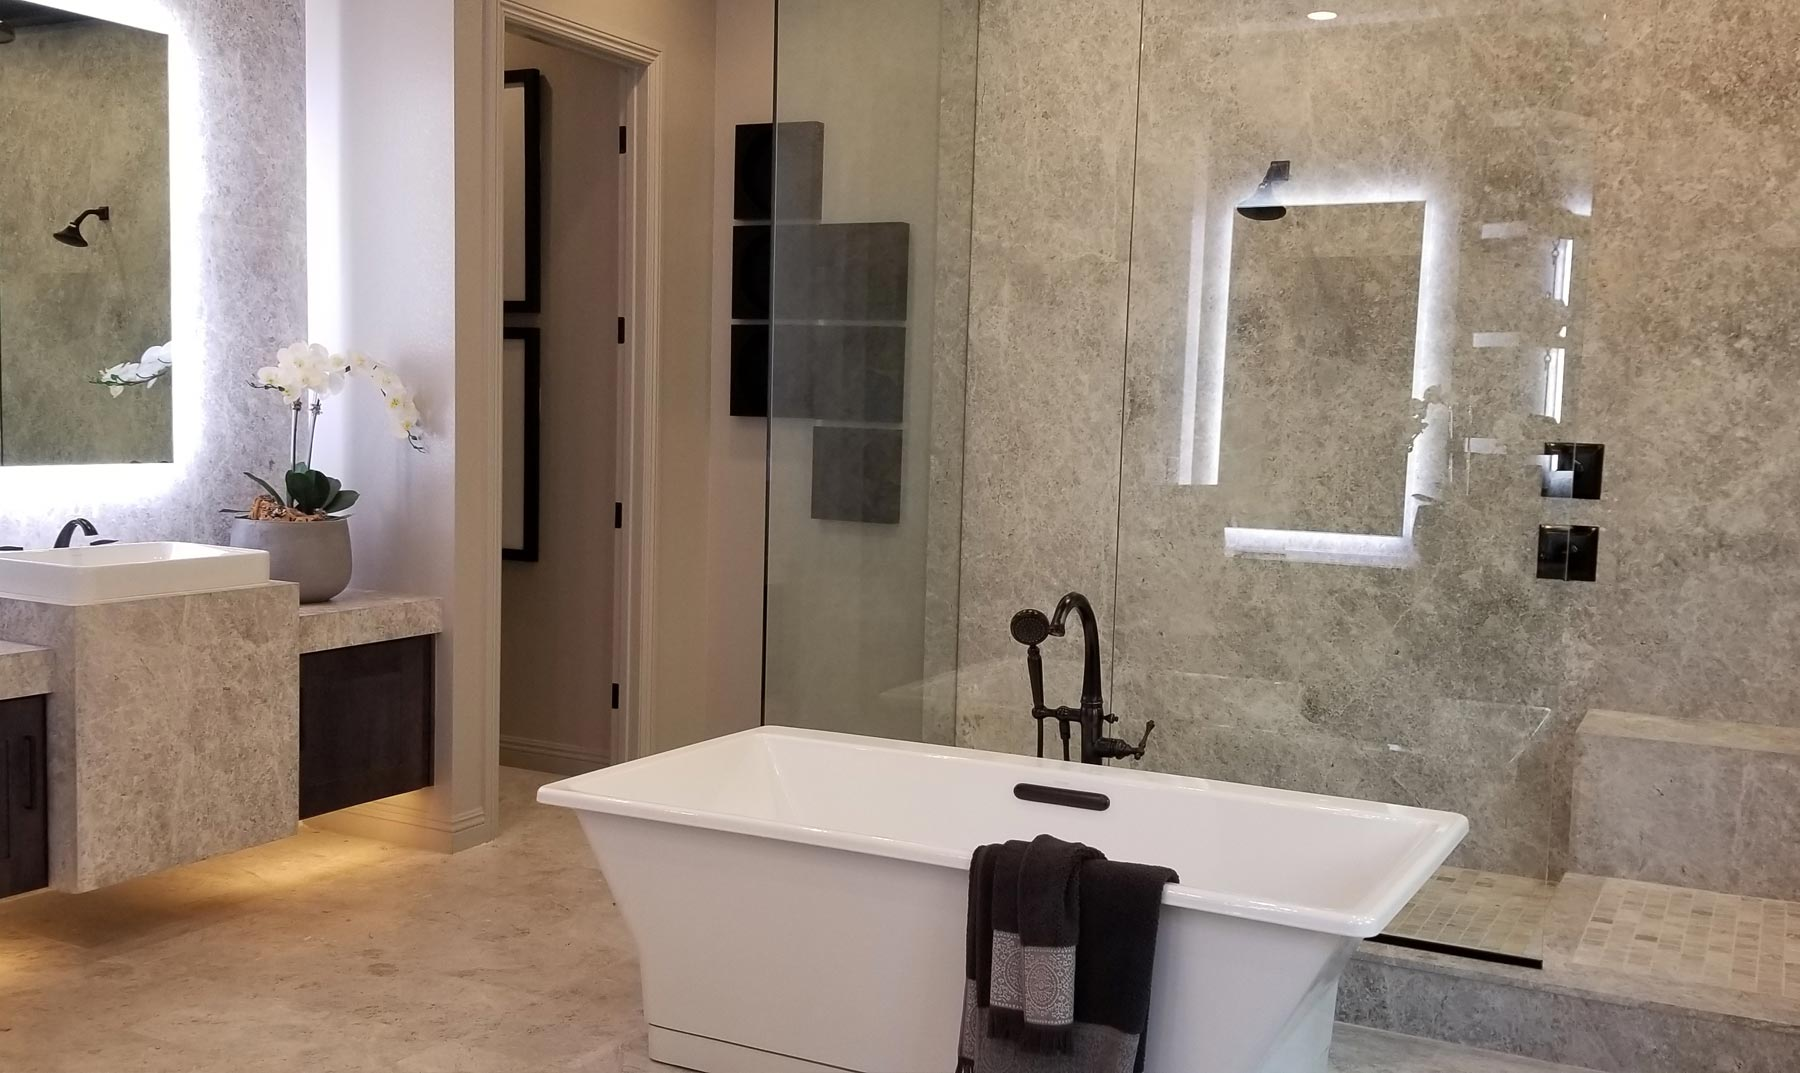 Miracle mile bathroom remodeling simcity - Los angeles bathroom remodeling contractor ...